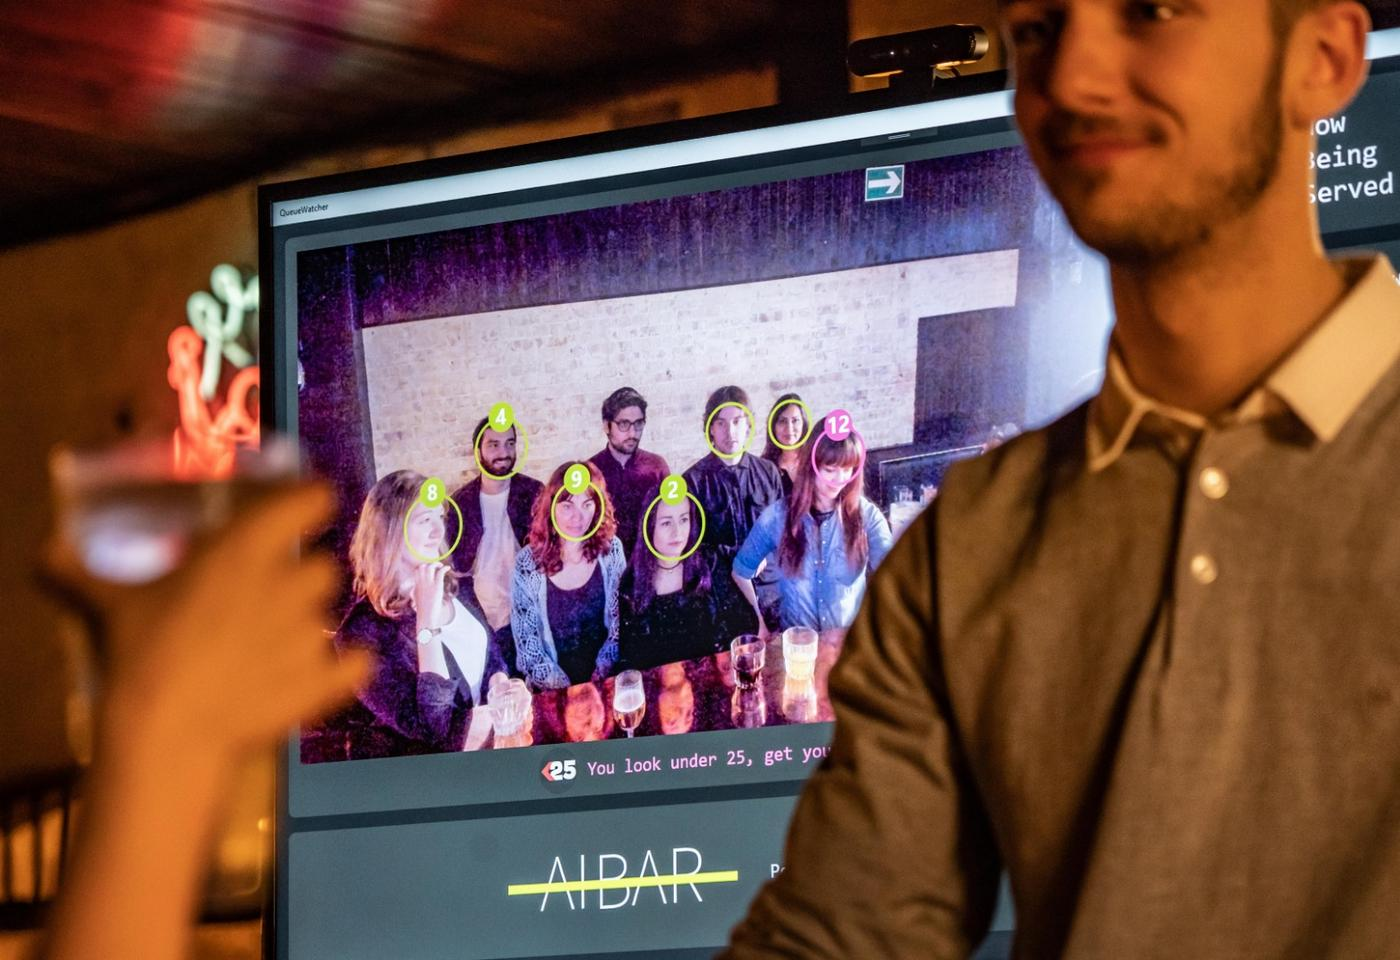 The A.I. Bar system makes use of a standard webcam that scans waiting customers and assigns each one with a virtual queue number, which can be seen on a display screen above the bar